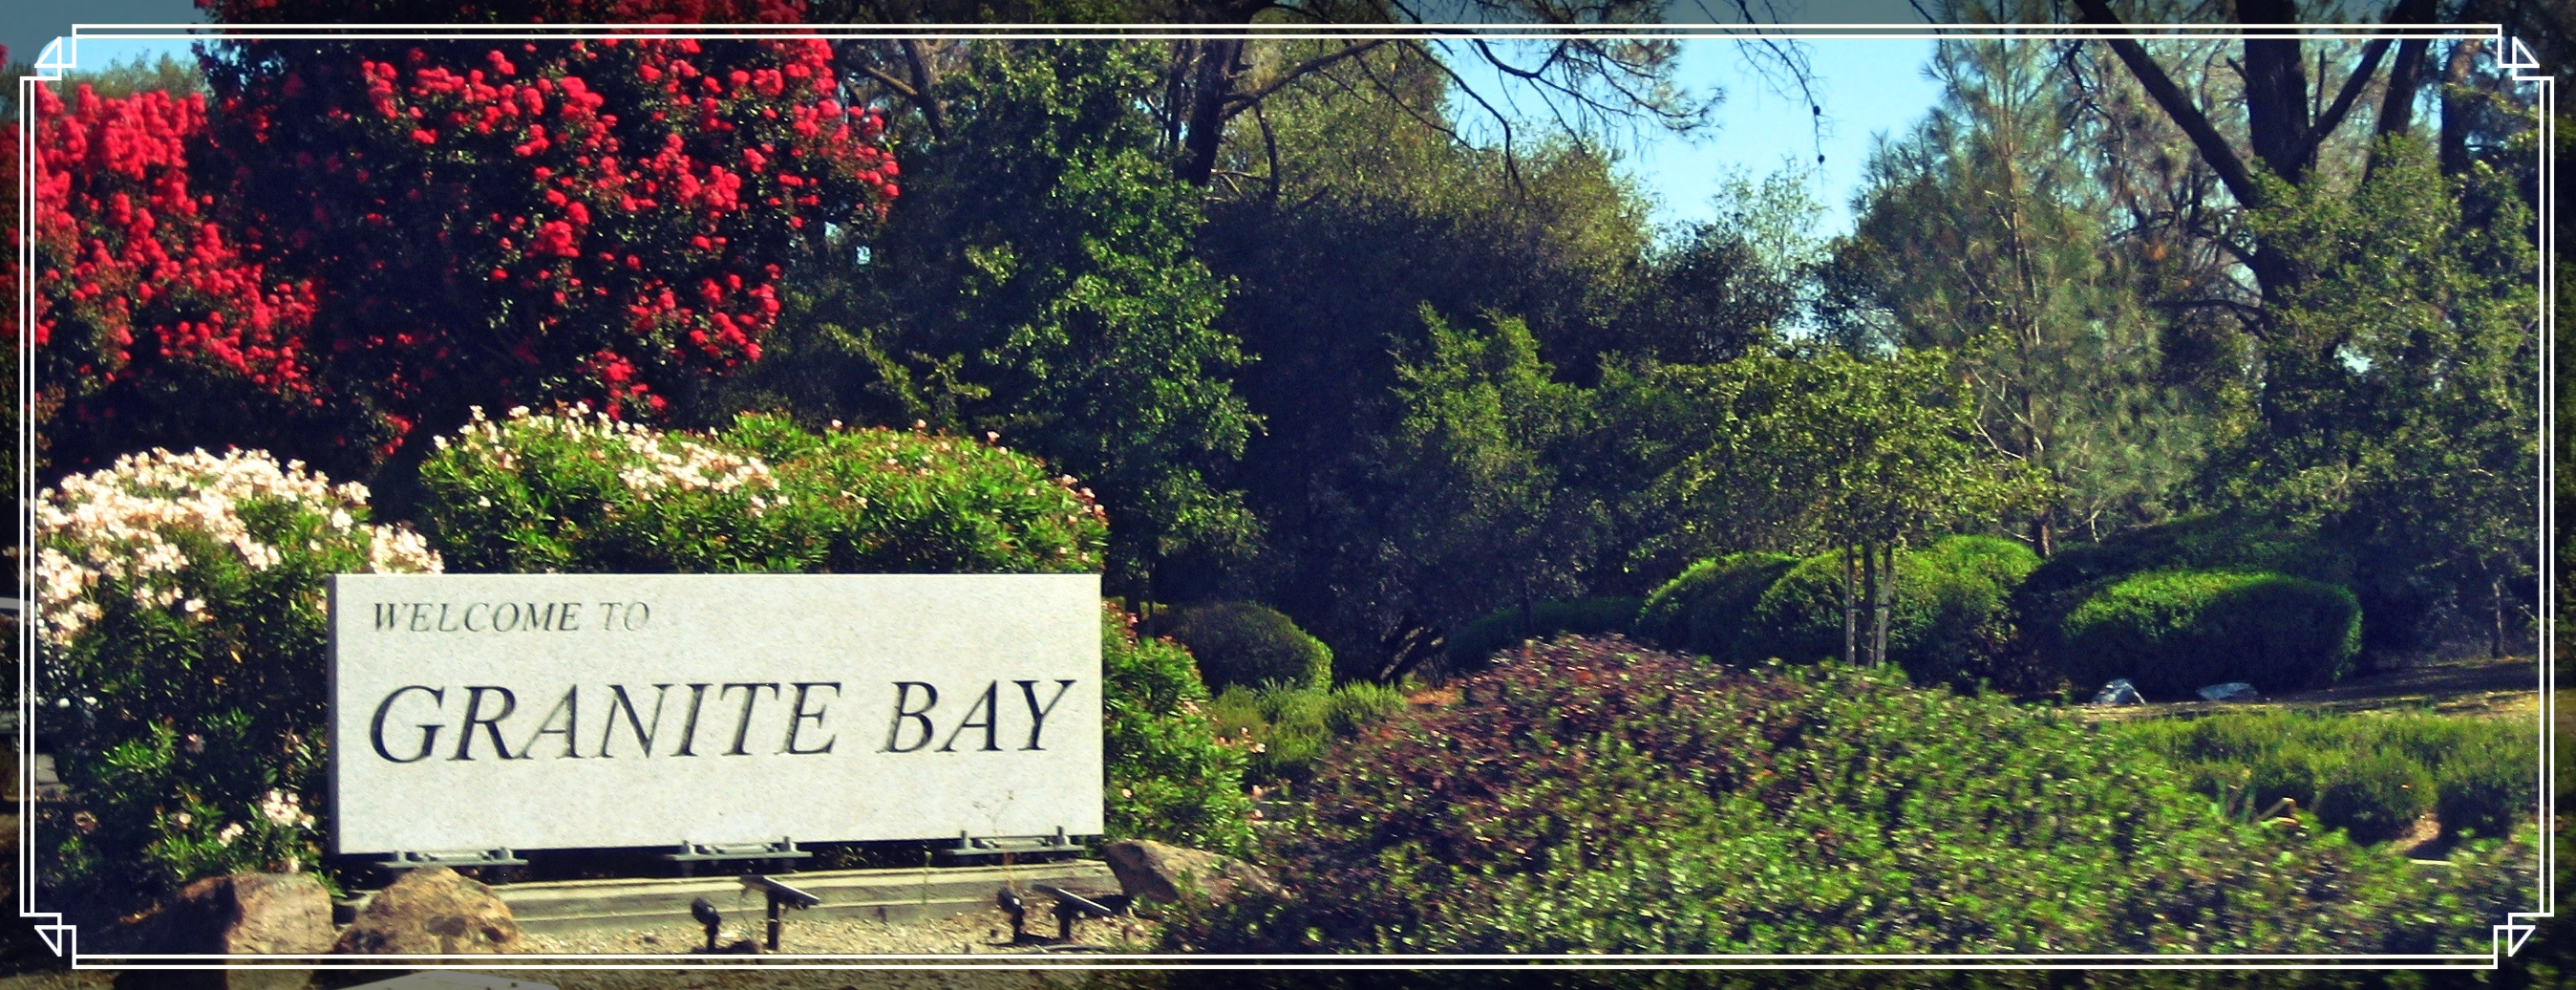 welcome-to-granite-bay-wide-header-2_fotor_fotor